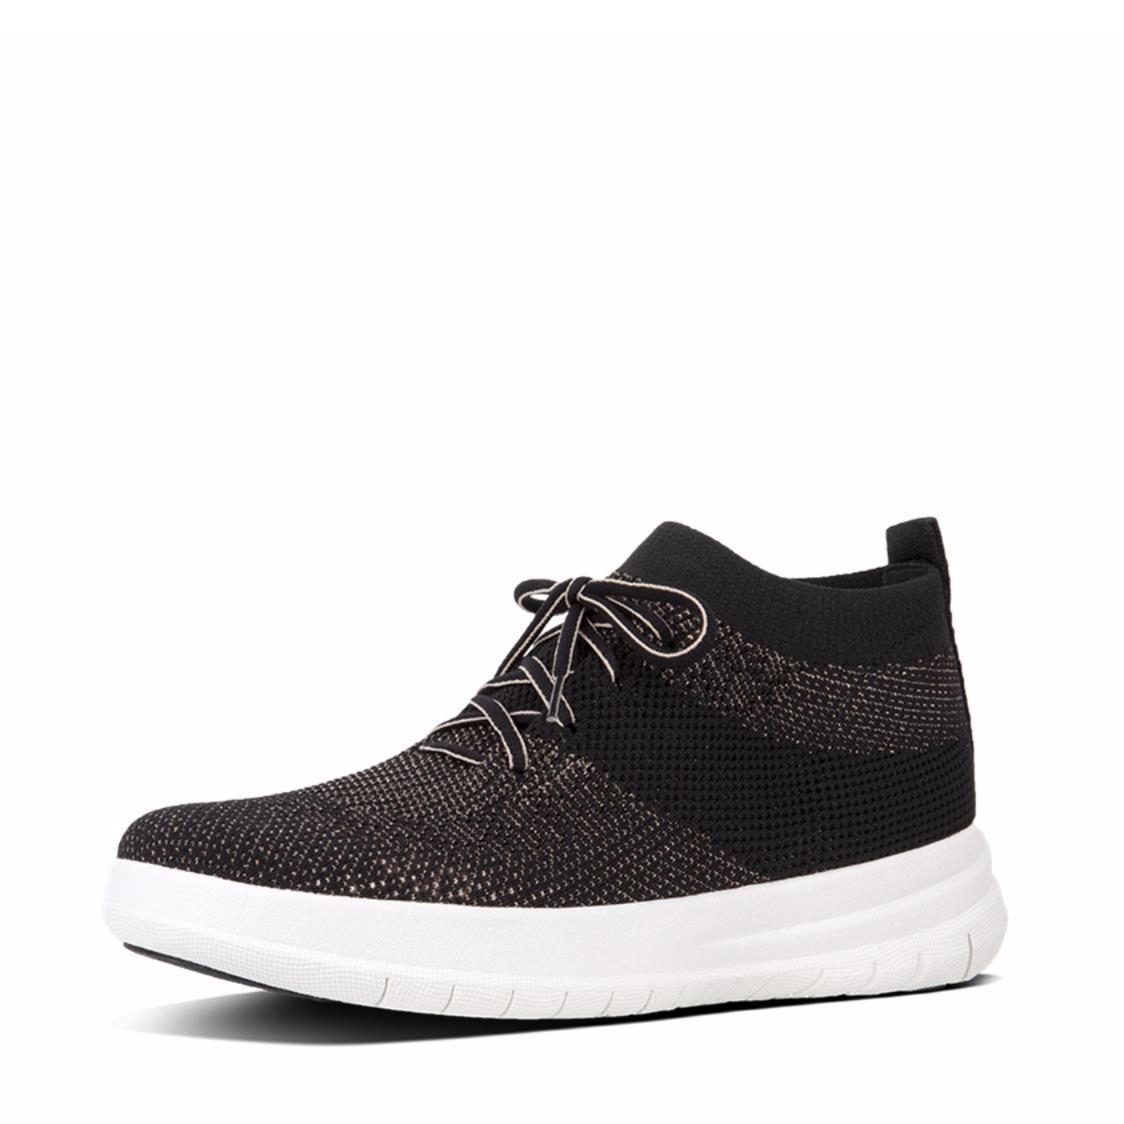 berknit Slip-On High-Top Sneakers